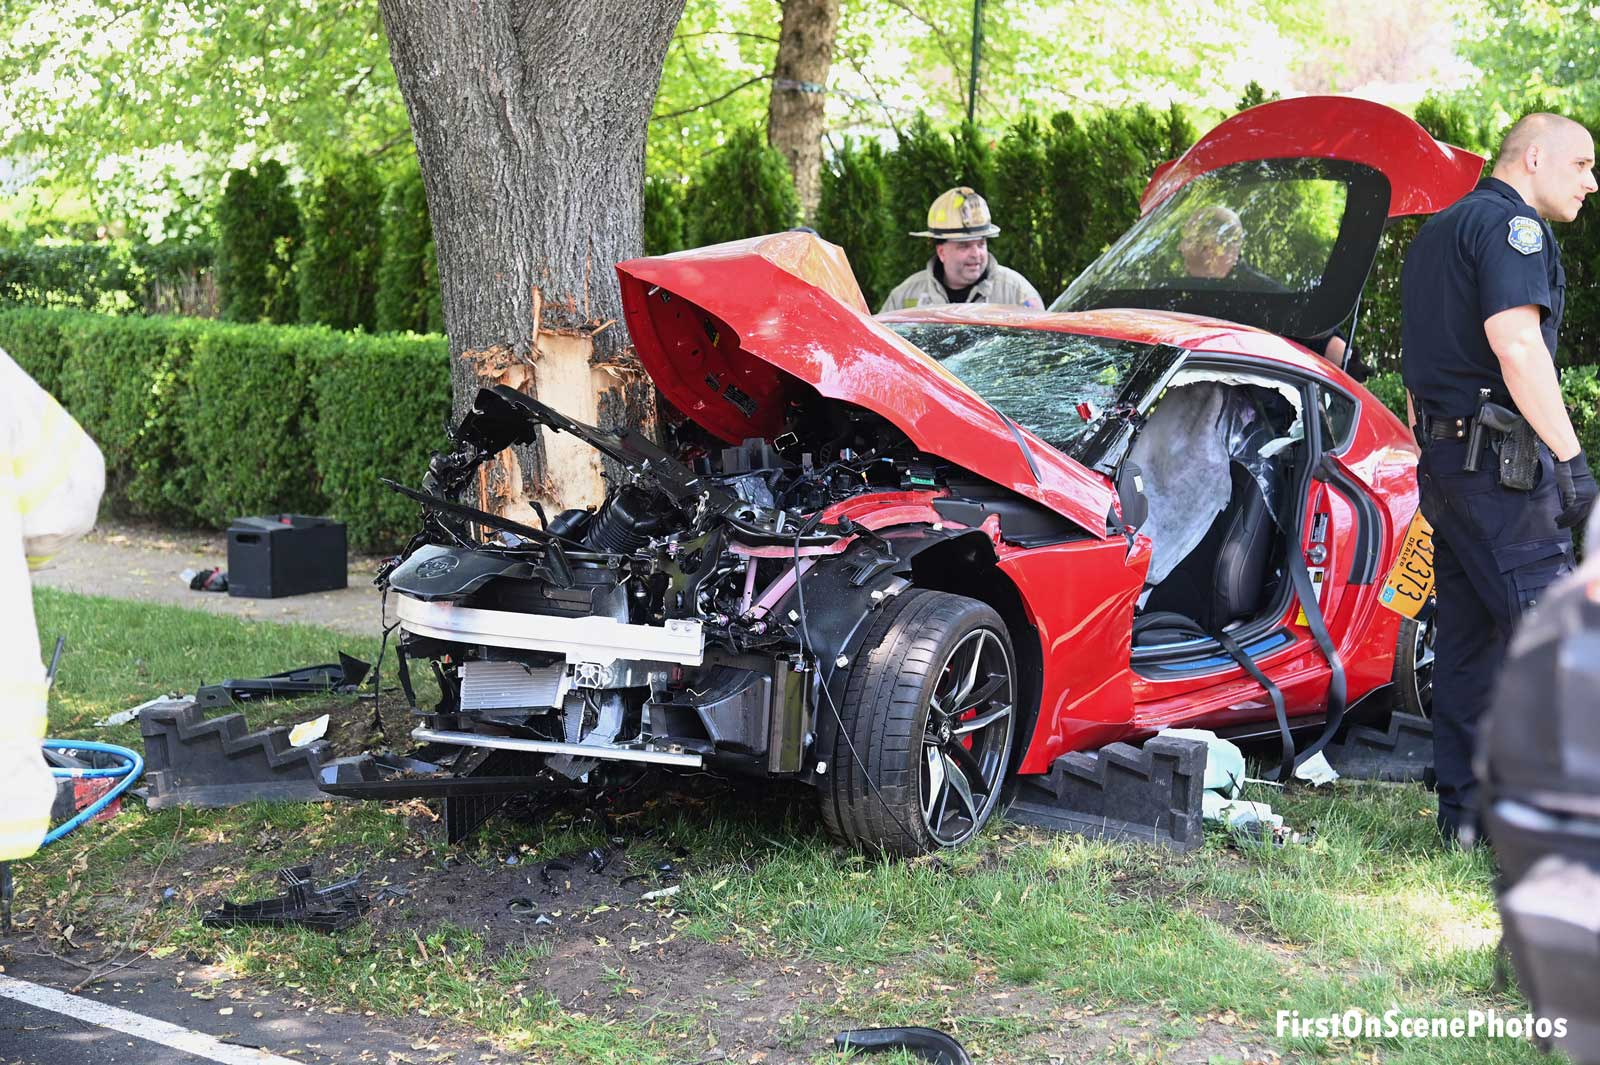 Vehicle smashed against a tree